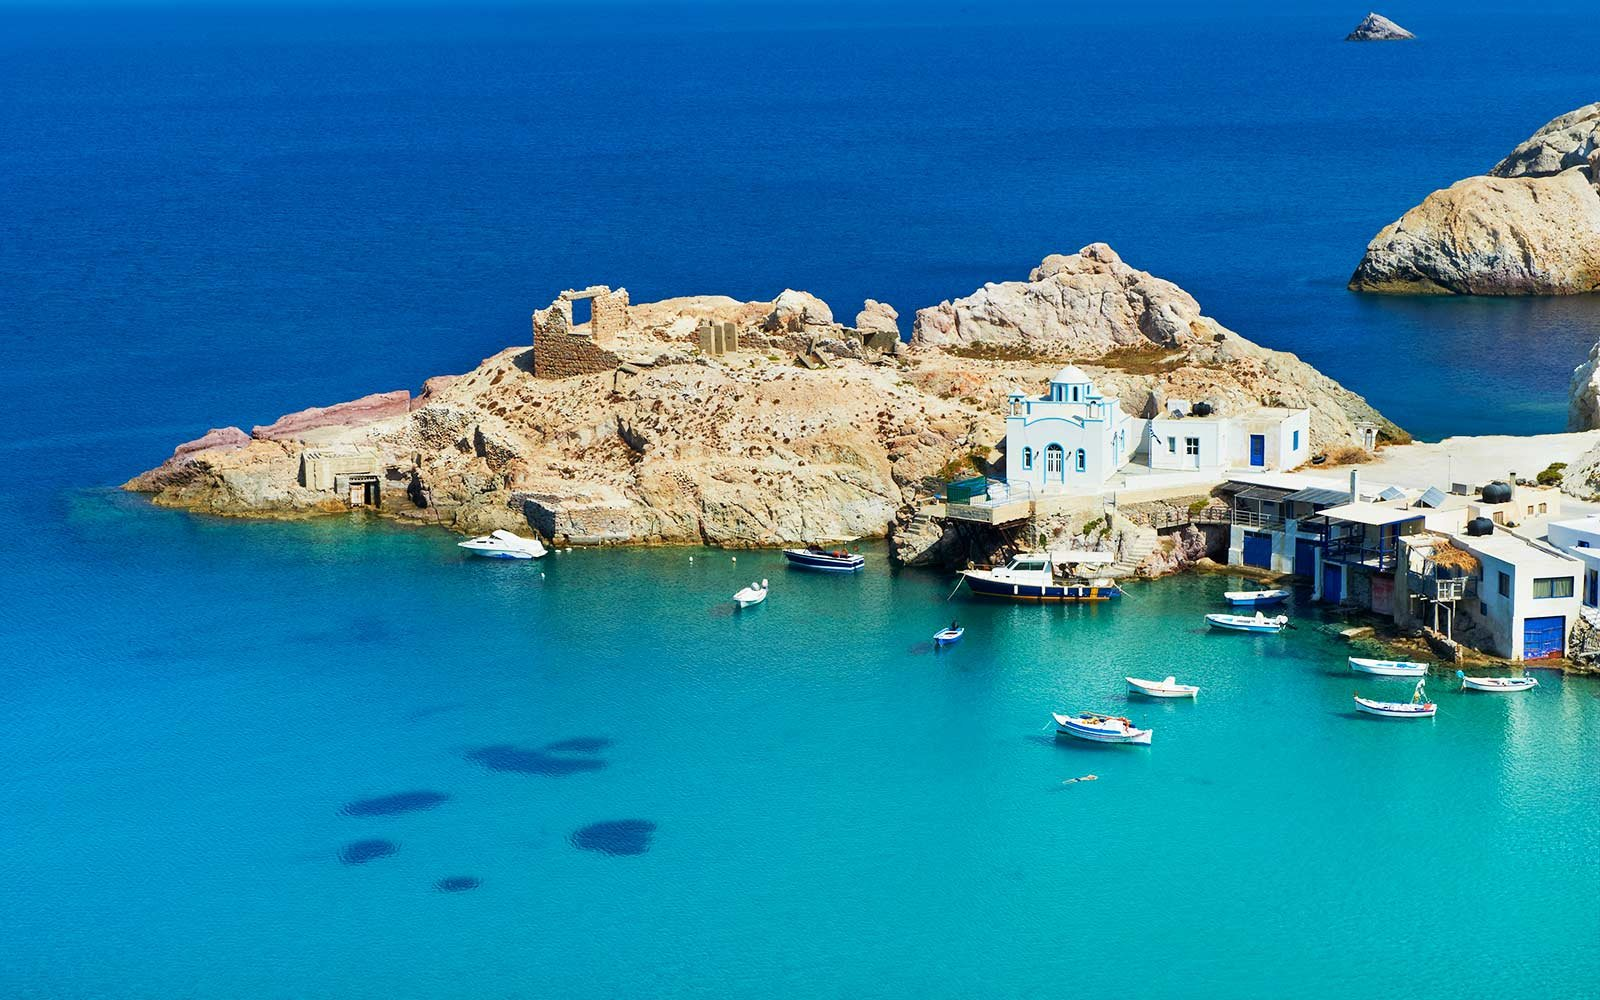 Firopotamos, Milos, Cyclades Islands, Greek Islands, Aegean Sea, Greece, Europe